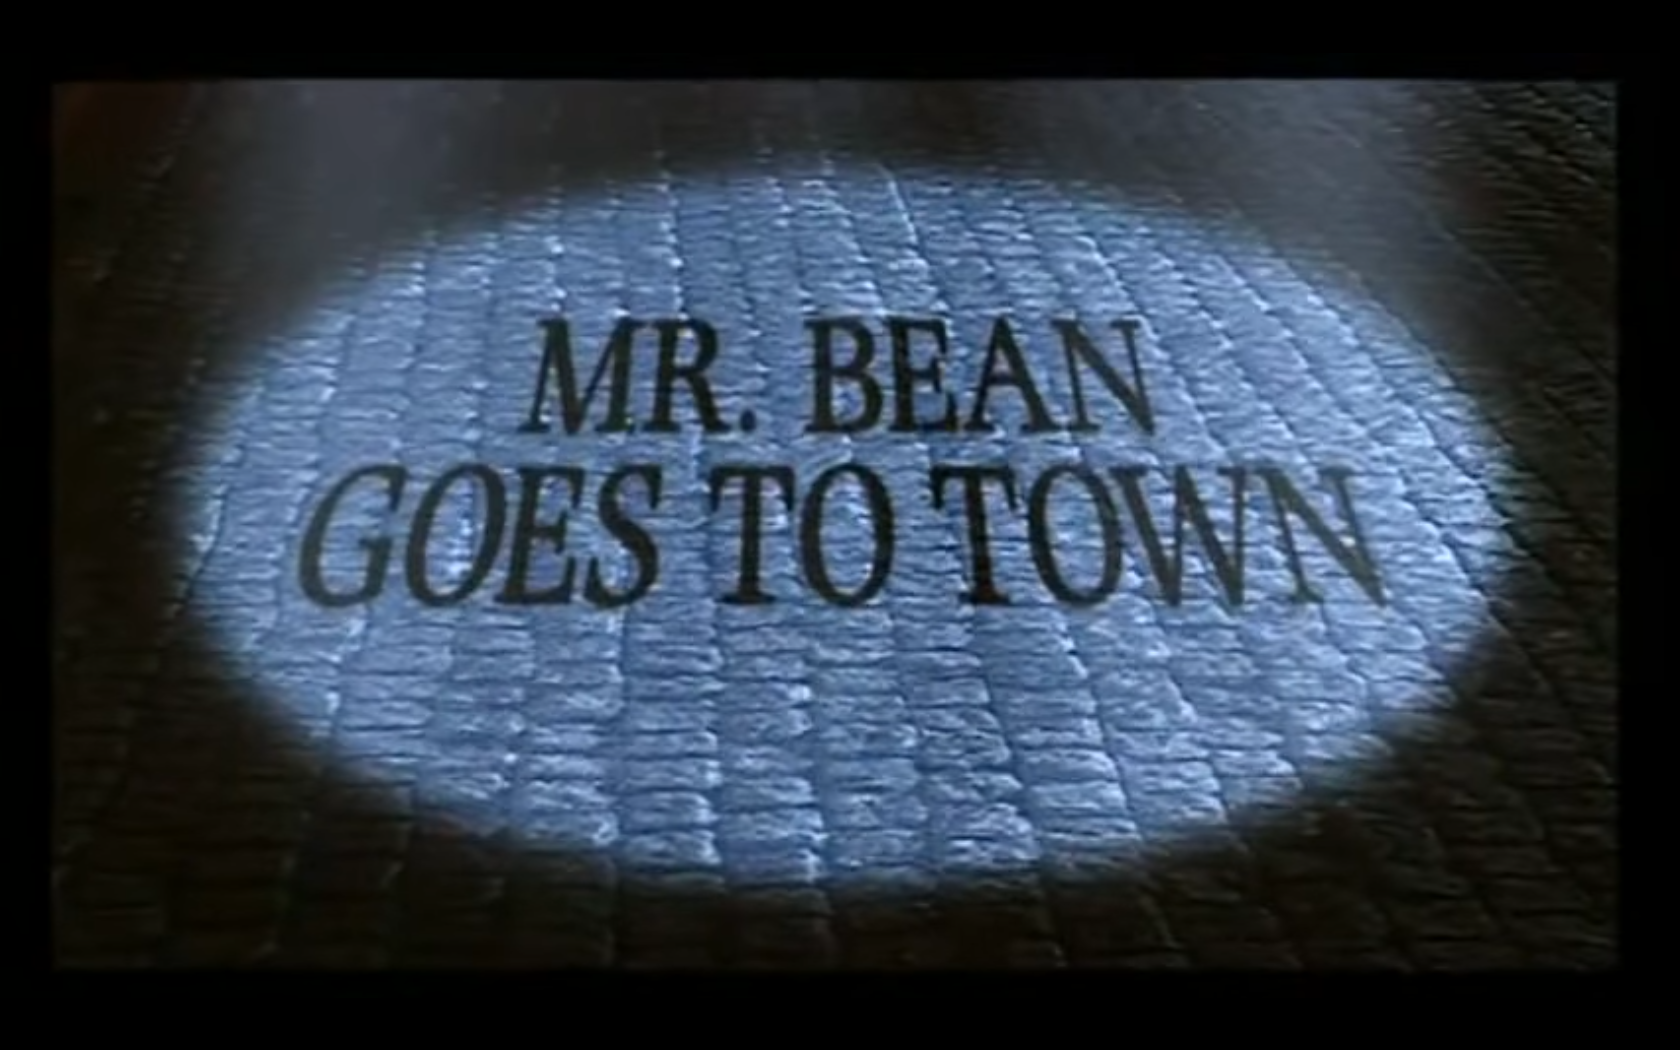 Mr bean goes to town mr bean wiki fandom powered by wikia mr bean goes to town solutioingenieria Images